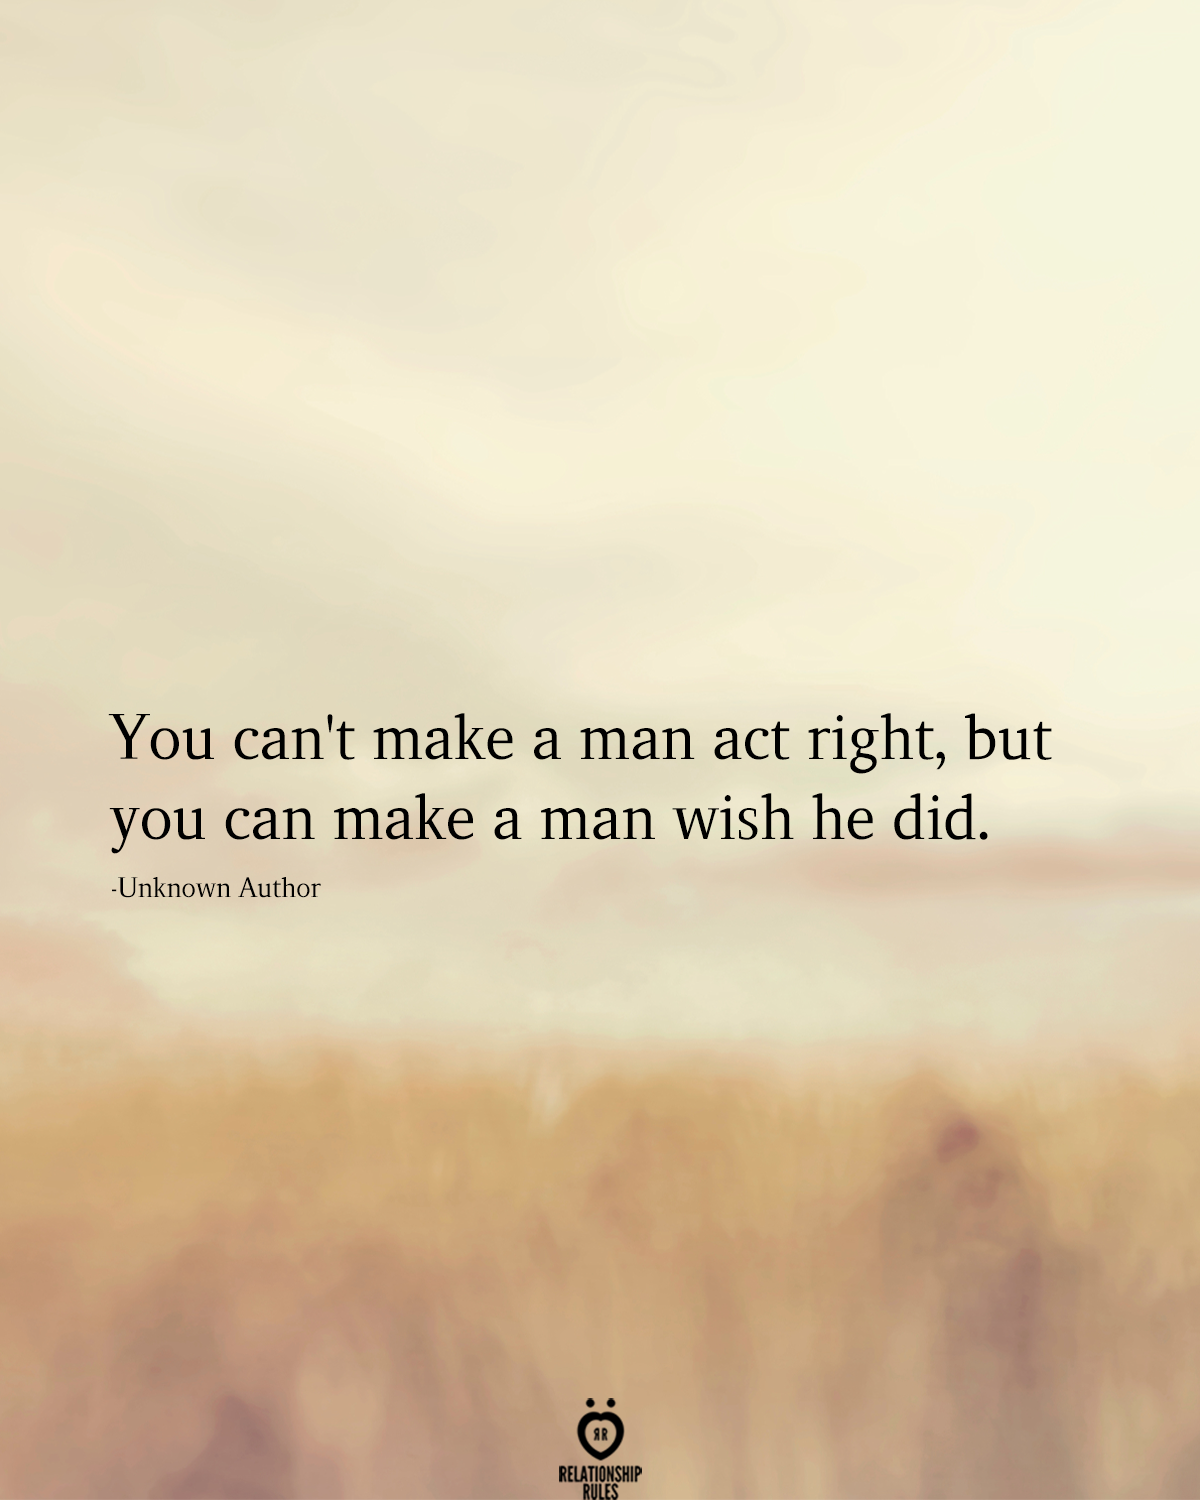 You Can't Make A Man Act Right, But You Can Make A Man Wish He Did